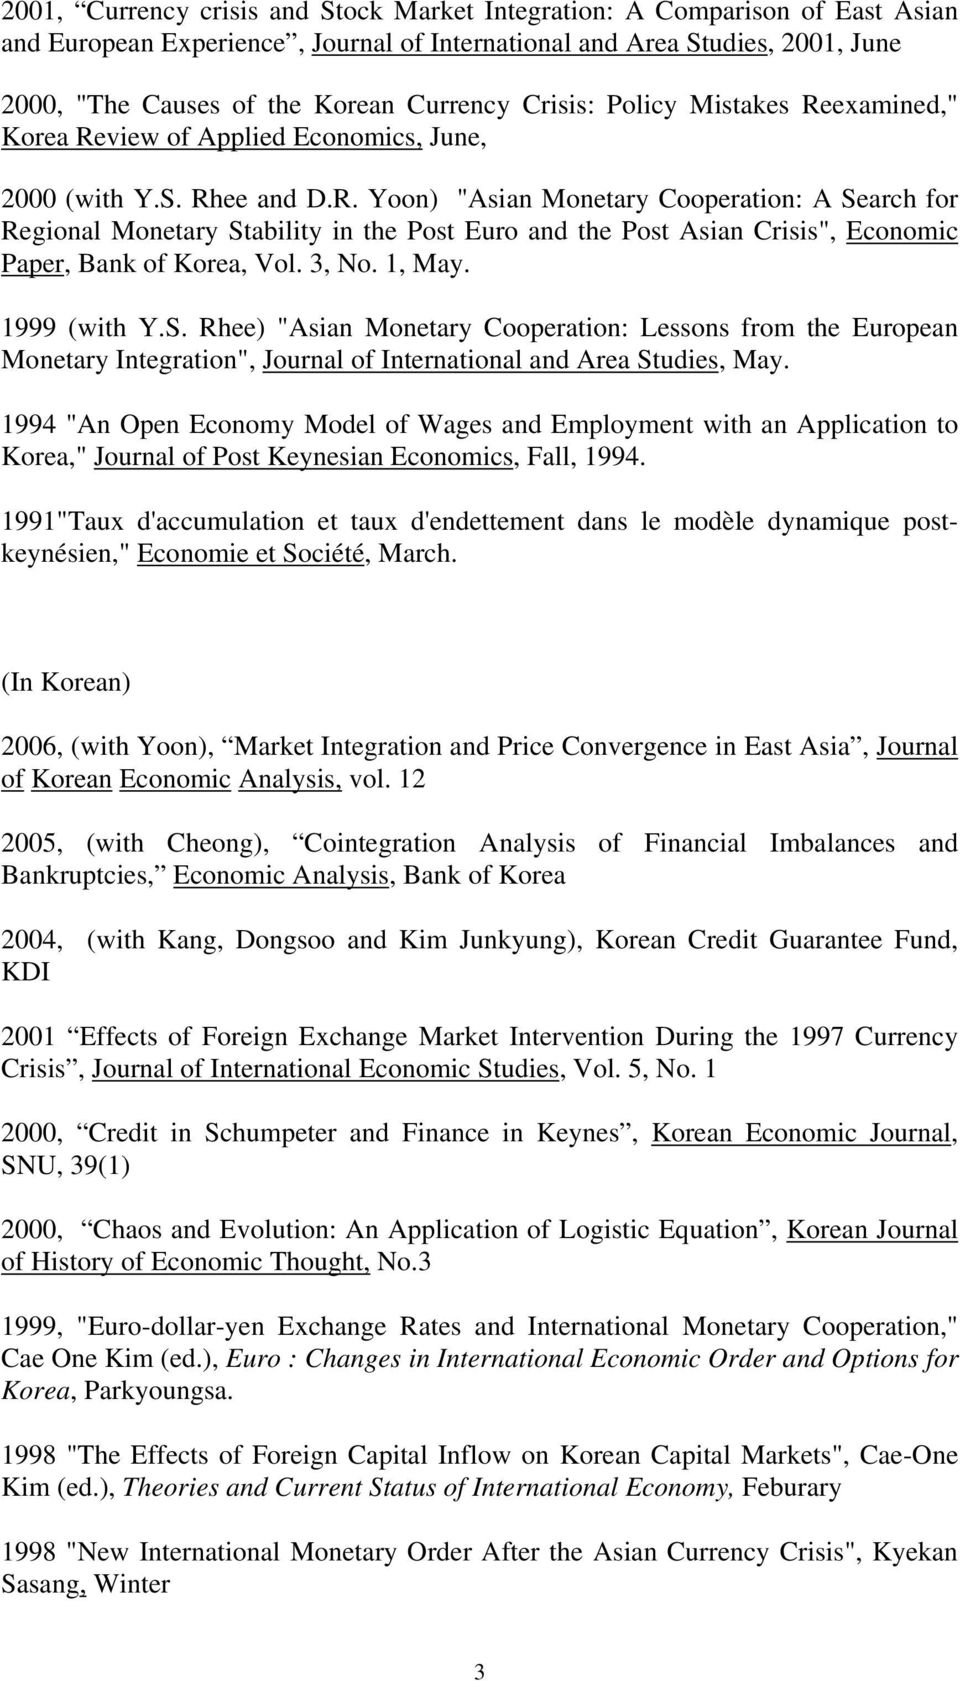 "3, No. 1, May. 1999 (with Y.S. Rhee) ""Asian Monetary Cooperation: Lessons from the European Monetary Integration"", Journal of International and Area Studies, May."